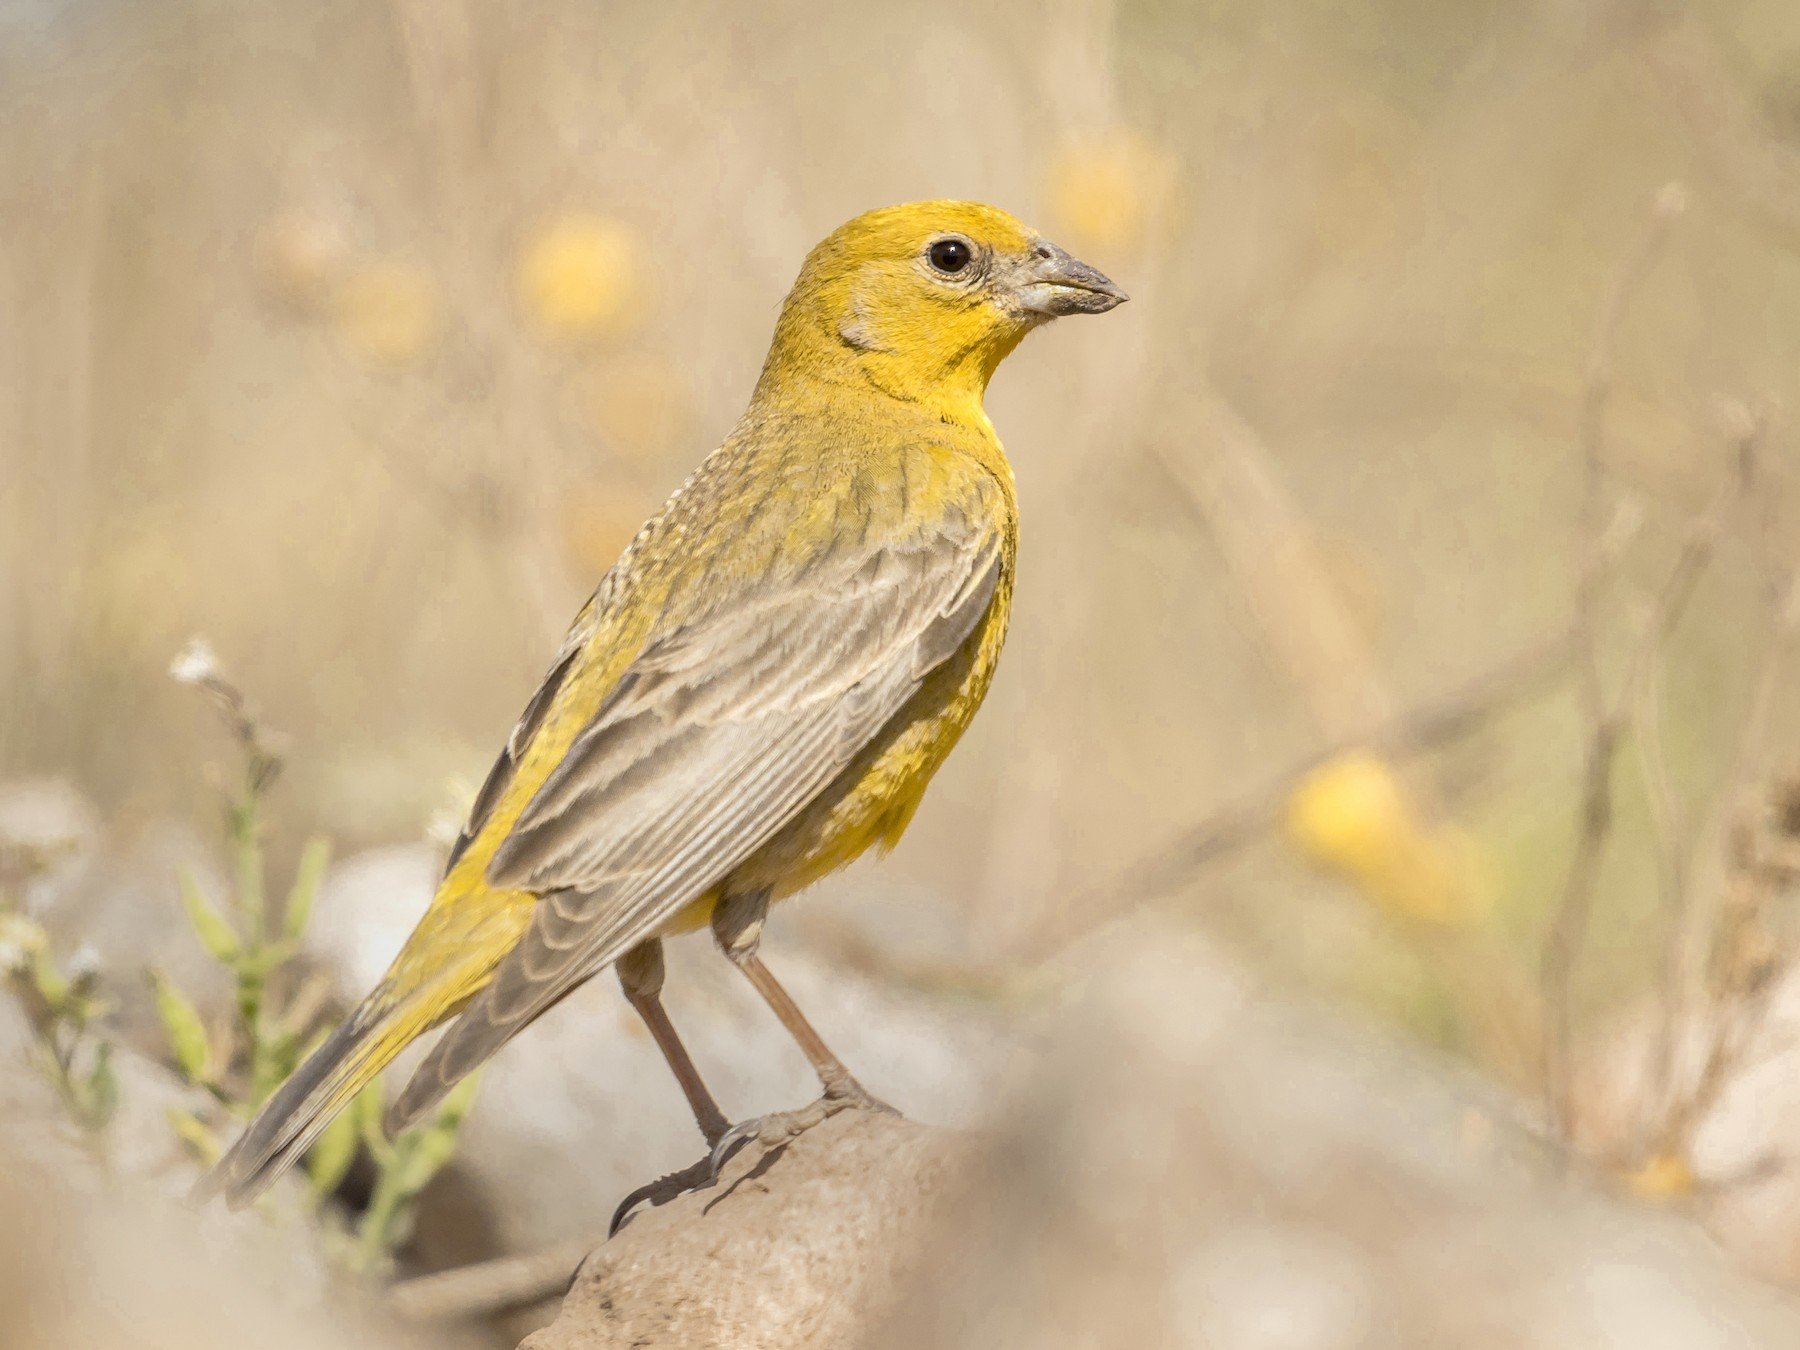 Monte Yellow-Finch - Martín  Perez